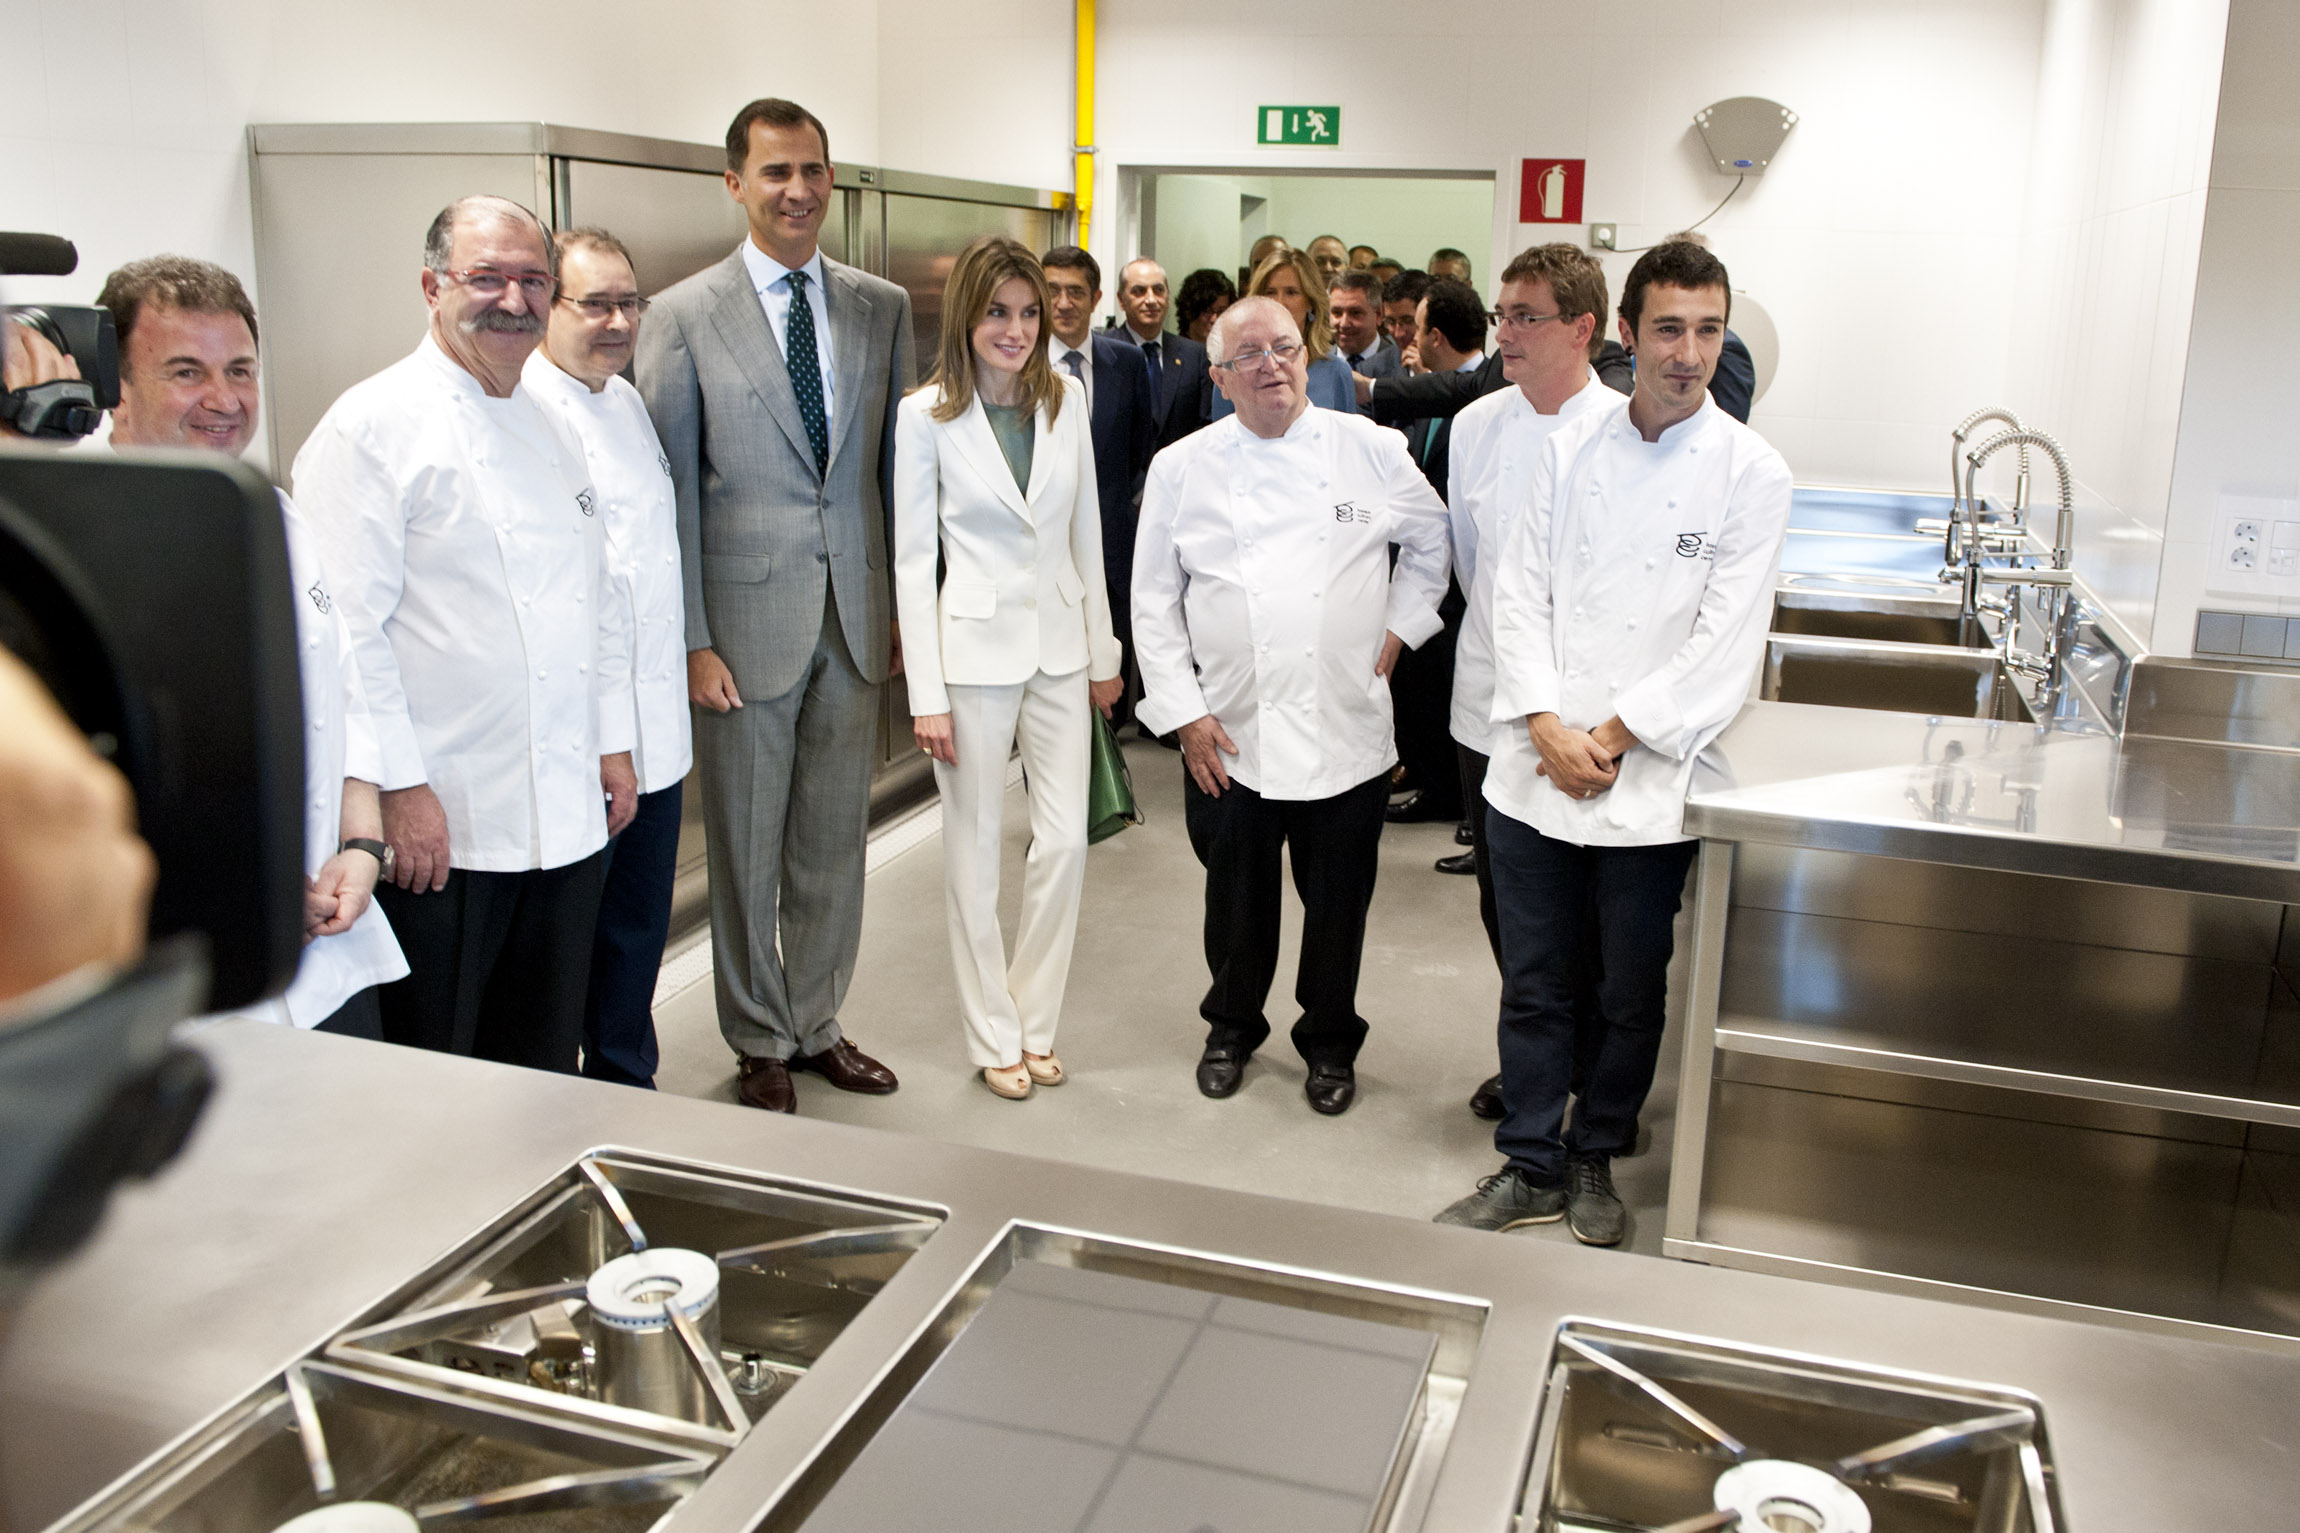 El Lehendakari y los Prncipes inauguran el Basque Culinary Center